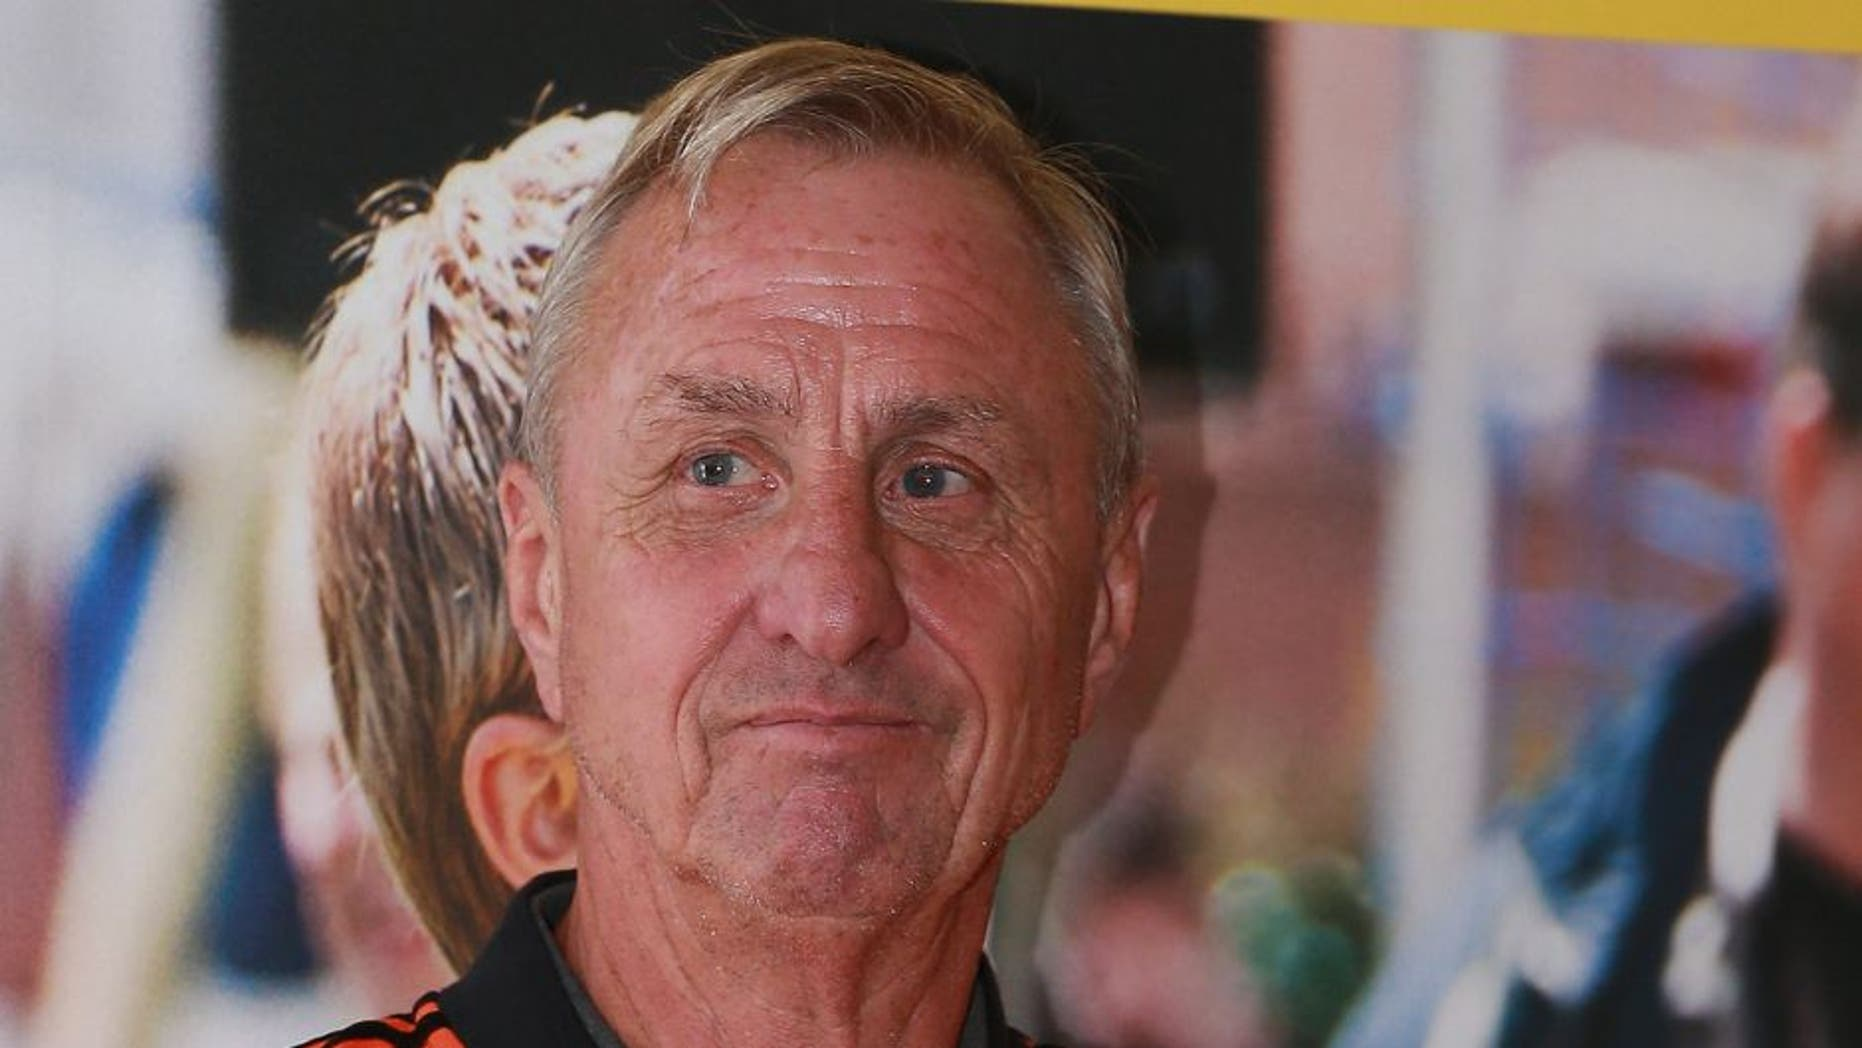 open dag van Johan Cruijff foundation Johan Cruijff during the Open day of the Johan Cruyff foundation on September 23, 2015 at the Olympic stadium in Amsterdam, The Netherlands.(Photo by VI Images via Getty Images)